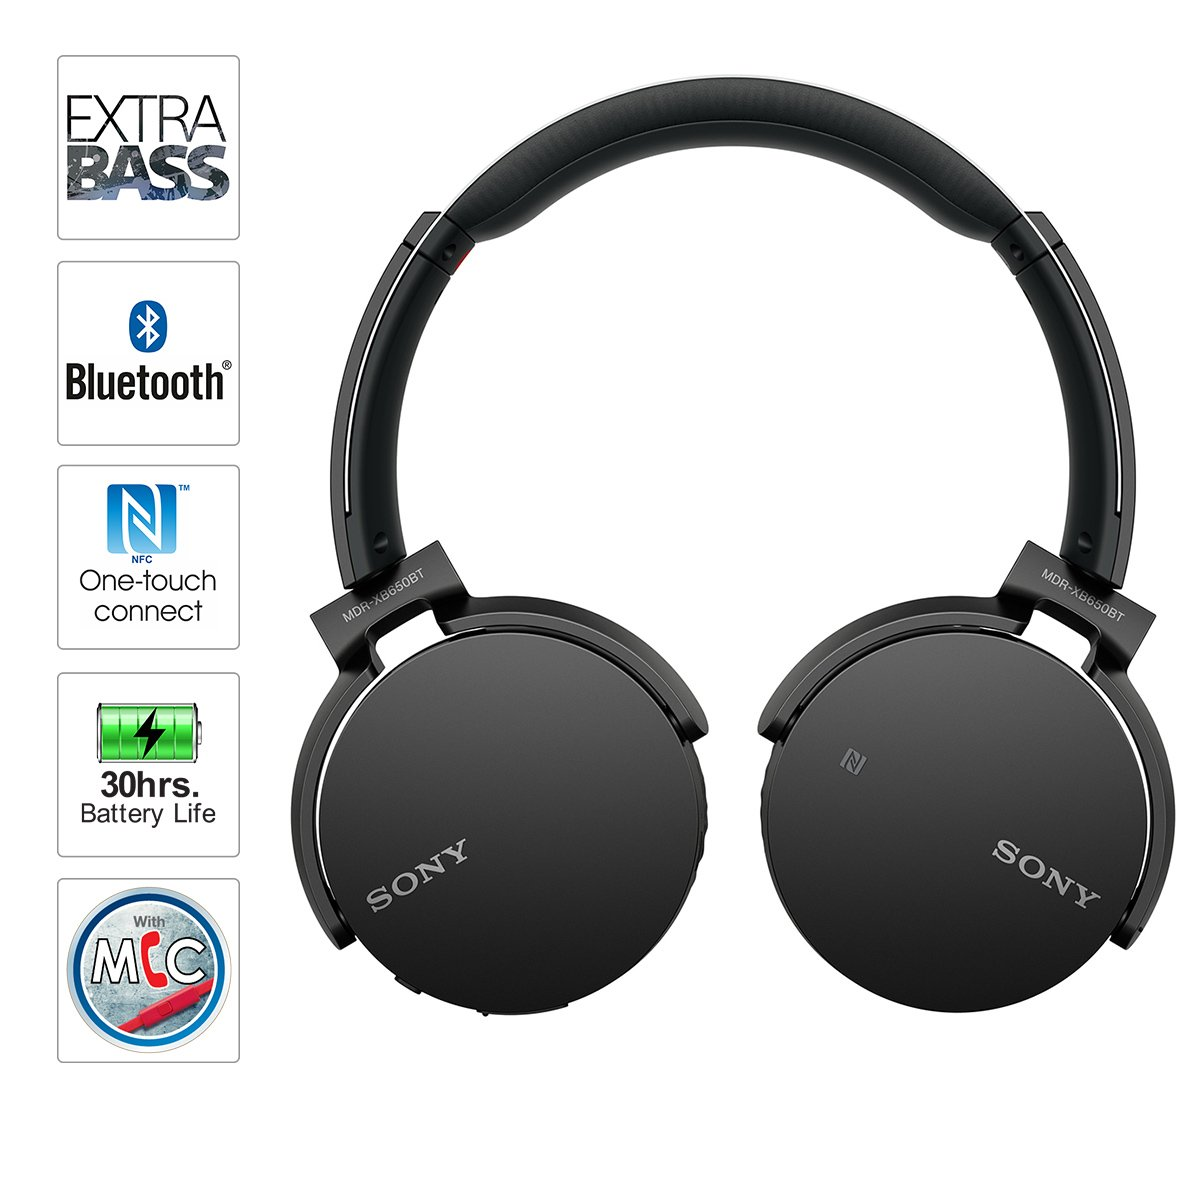 Zip Up Headphones Amazoncom Sony Mdrxb650bt B Extra Bass Bluetooth Headphones